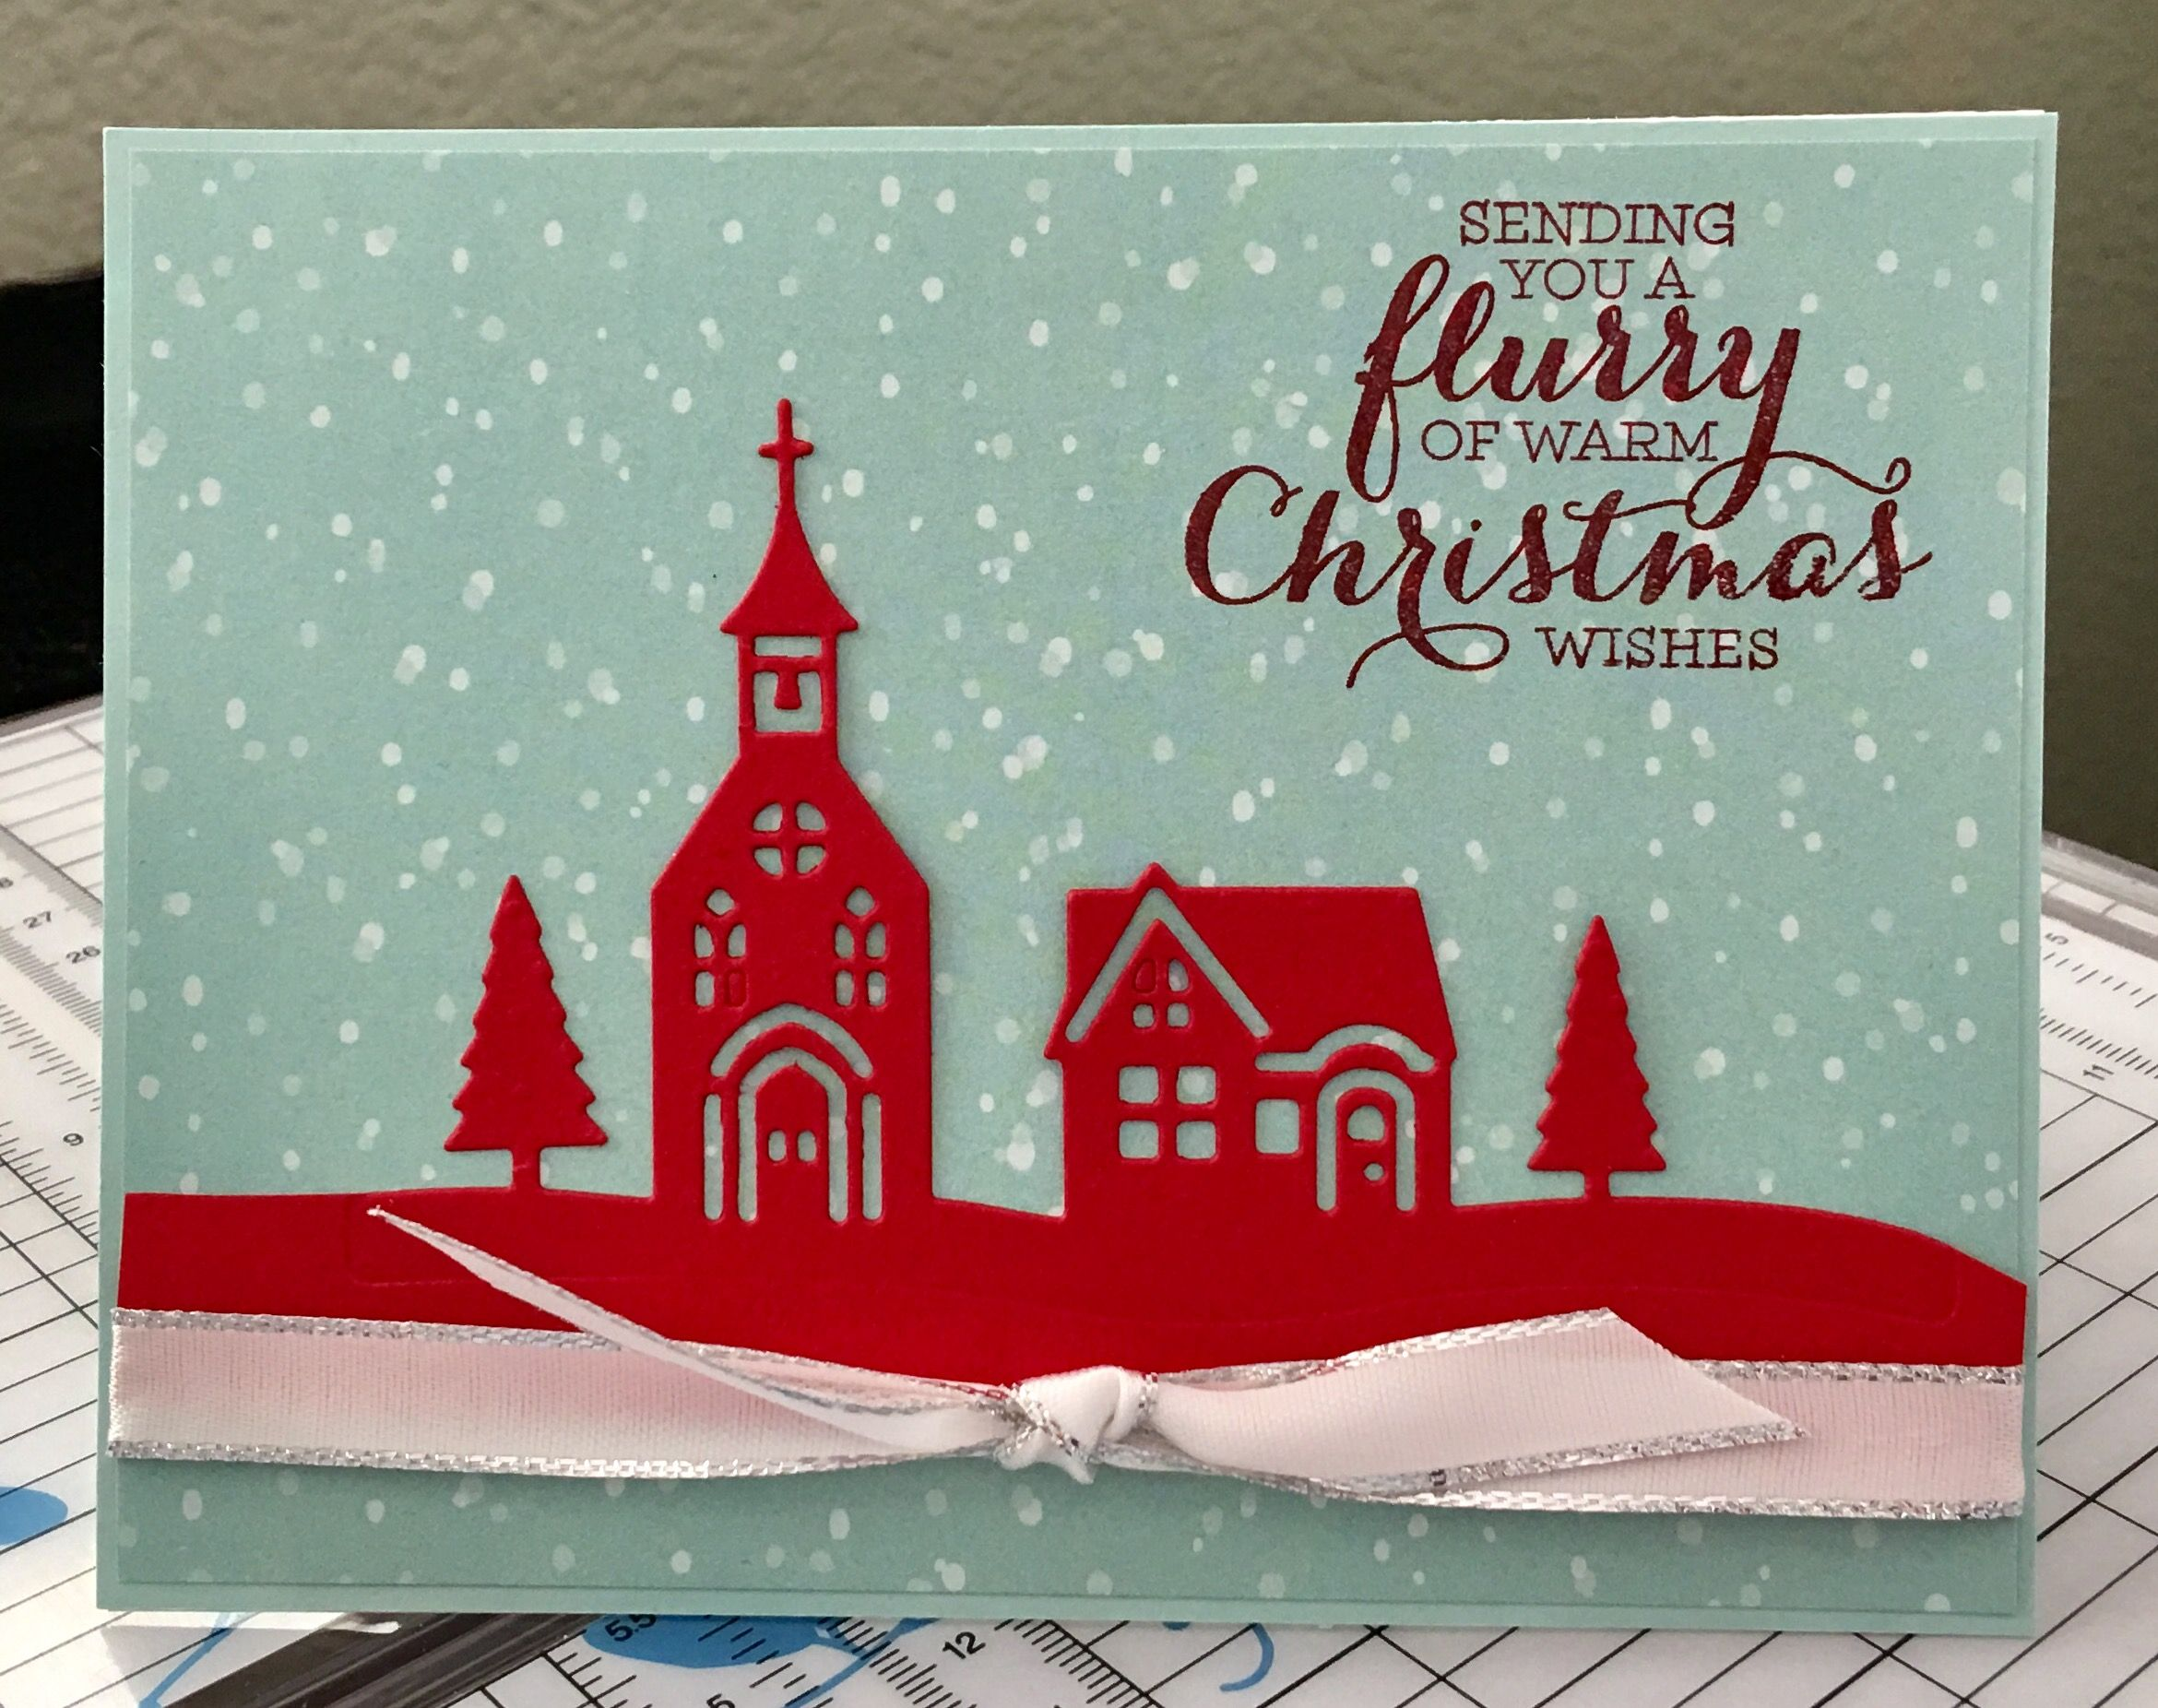 Pin by allison davini on allisons creative greetings pinterest hearts christmas 2017 christmas cards creative card ideas holiday catalog stamping kristyandbryce Choice Image